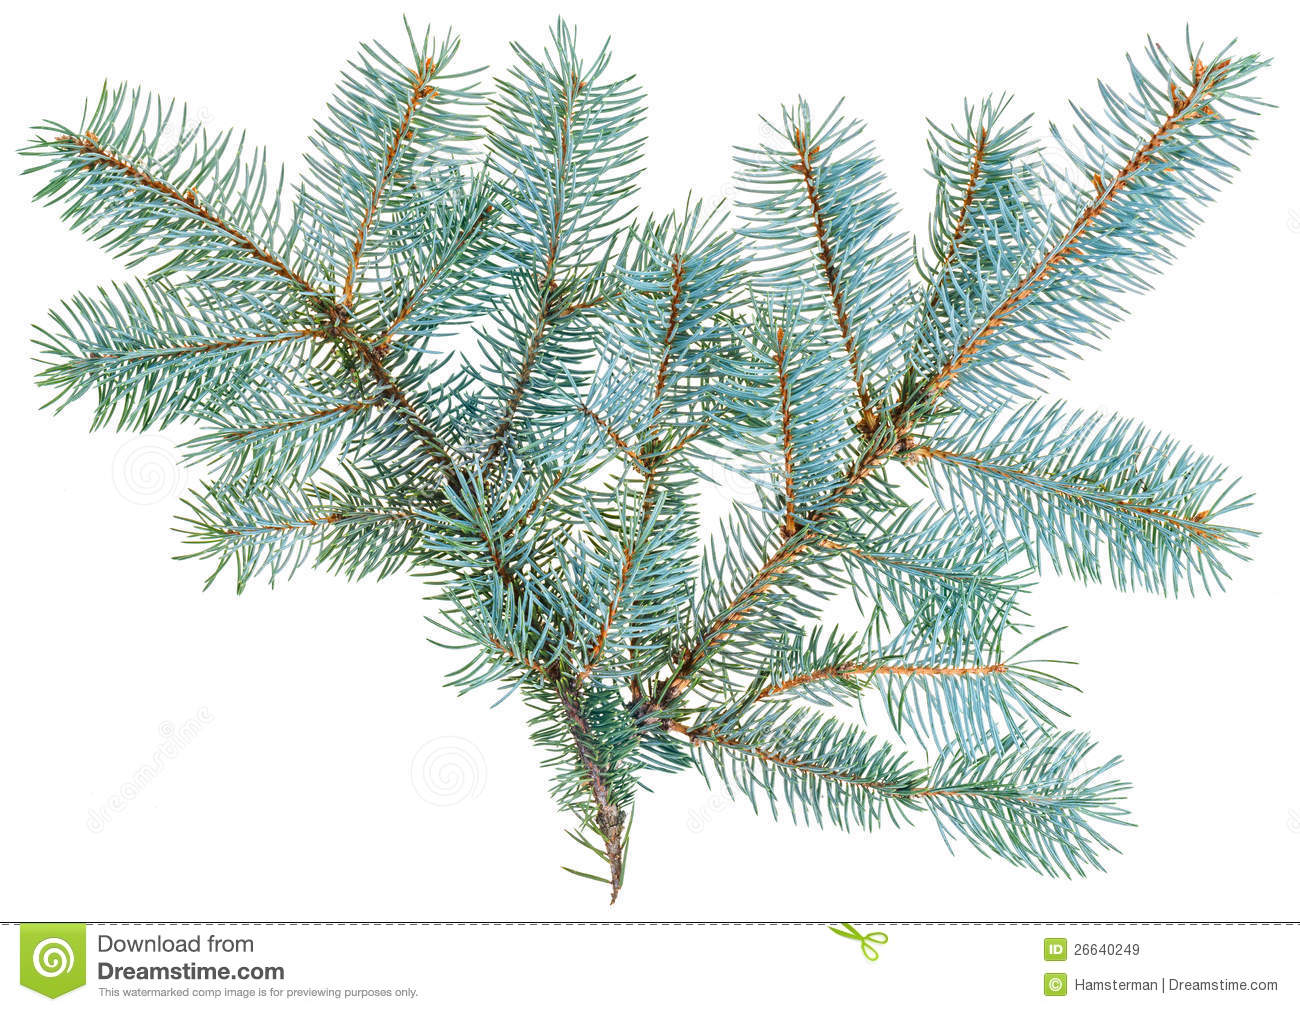 Spruce twig clipart #16